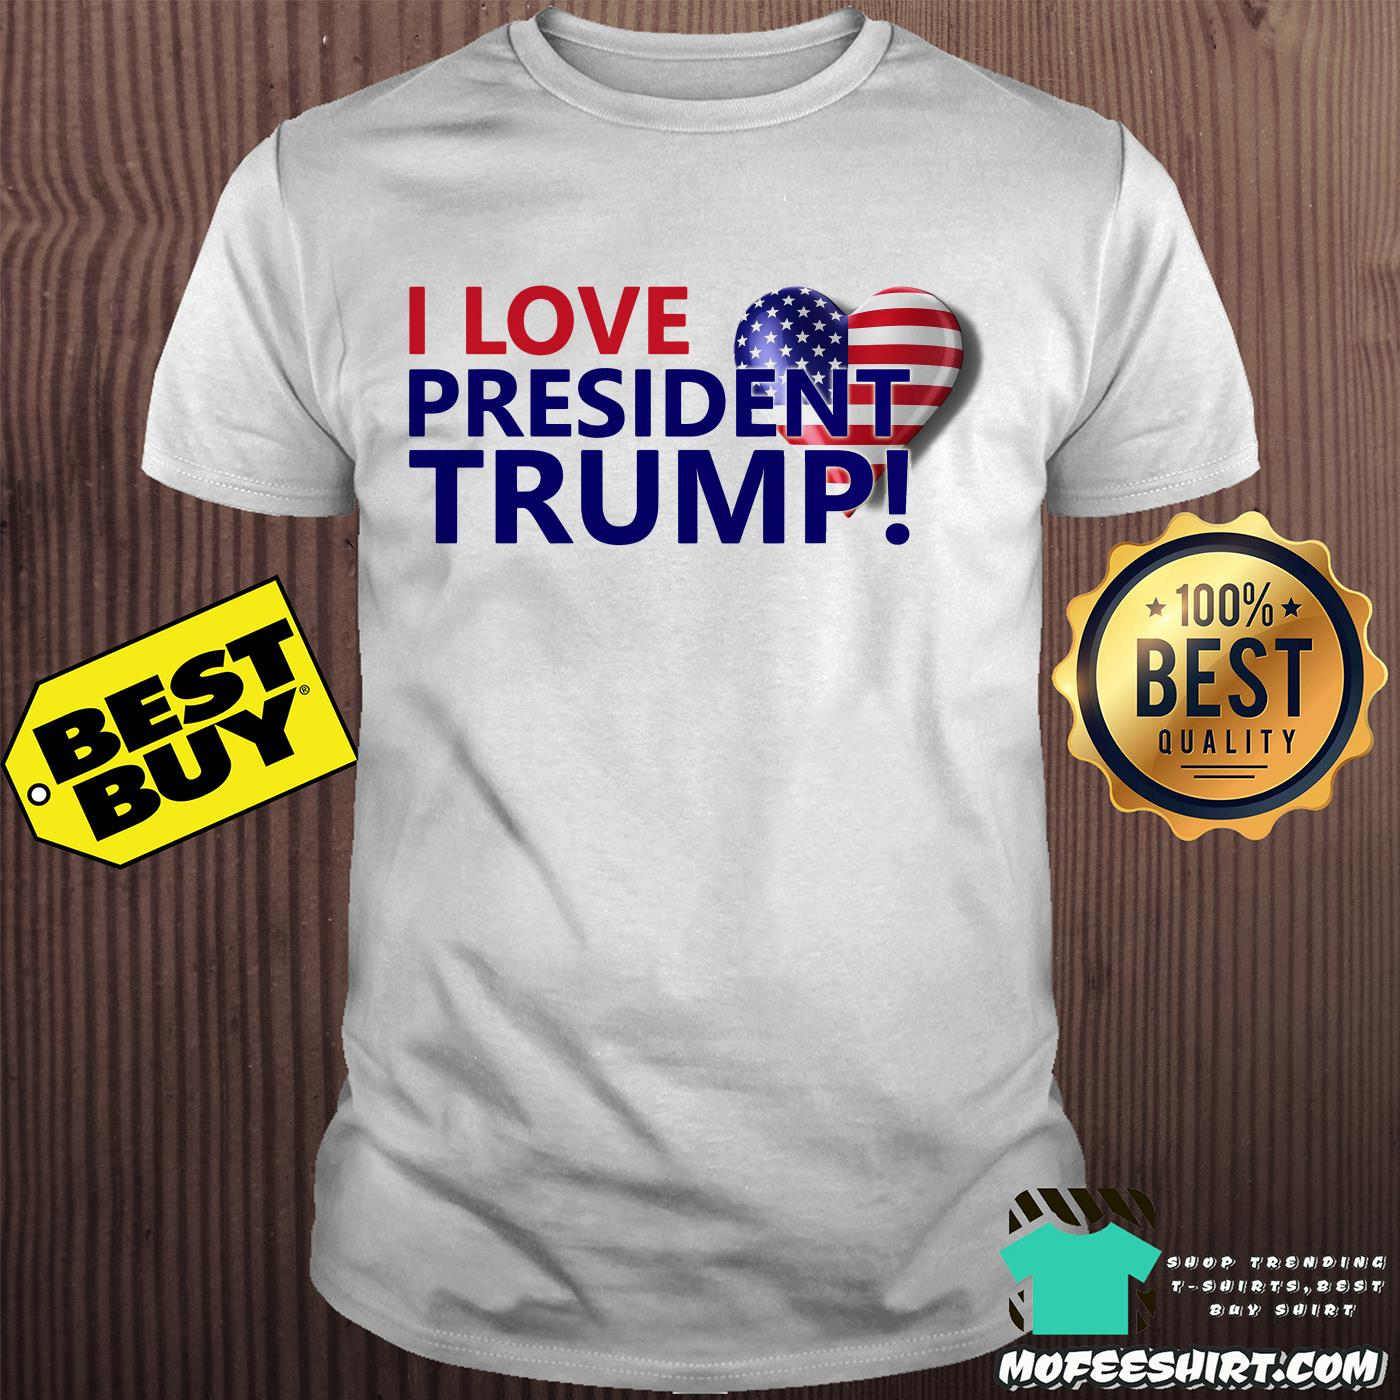 I love president Trump heart shirt